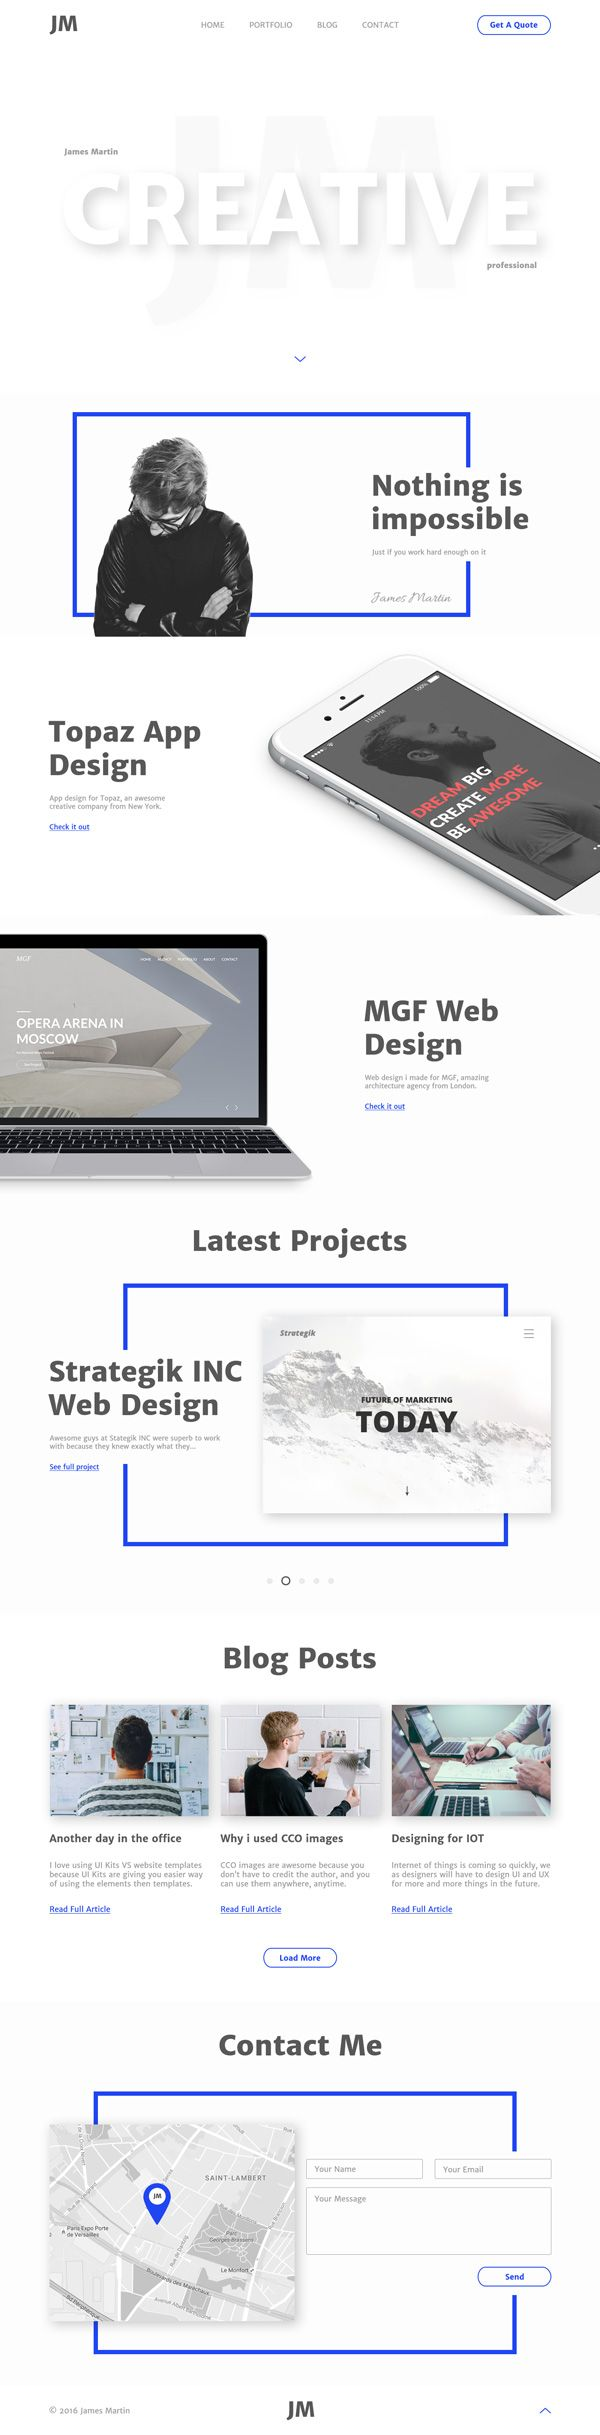 Today we have for you a developer friendly HTML template with an organized structure that will make a great choice for...